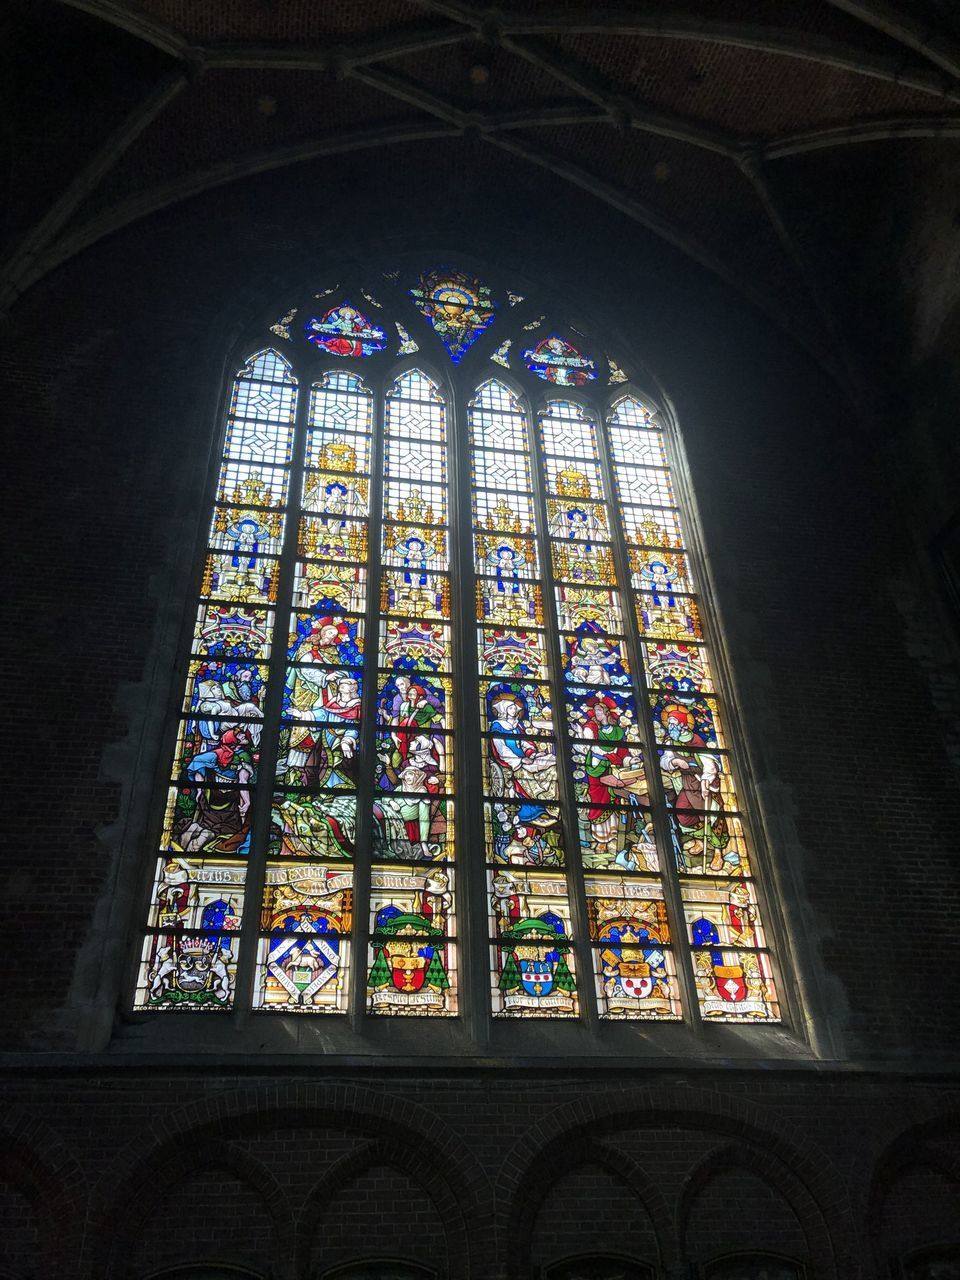 stained glass, place of worship, religion, belief, window, glass, architecture, spirituality, built structure, low angle view, glass - material, indoors, multi colored, building, no people, arch, ceiling, ornate